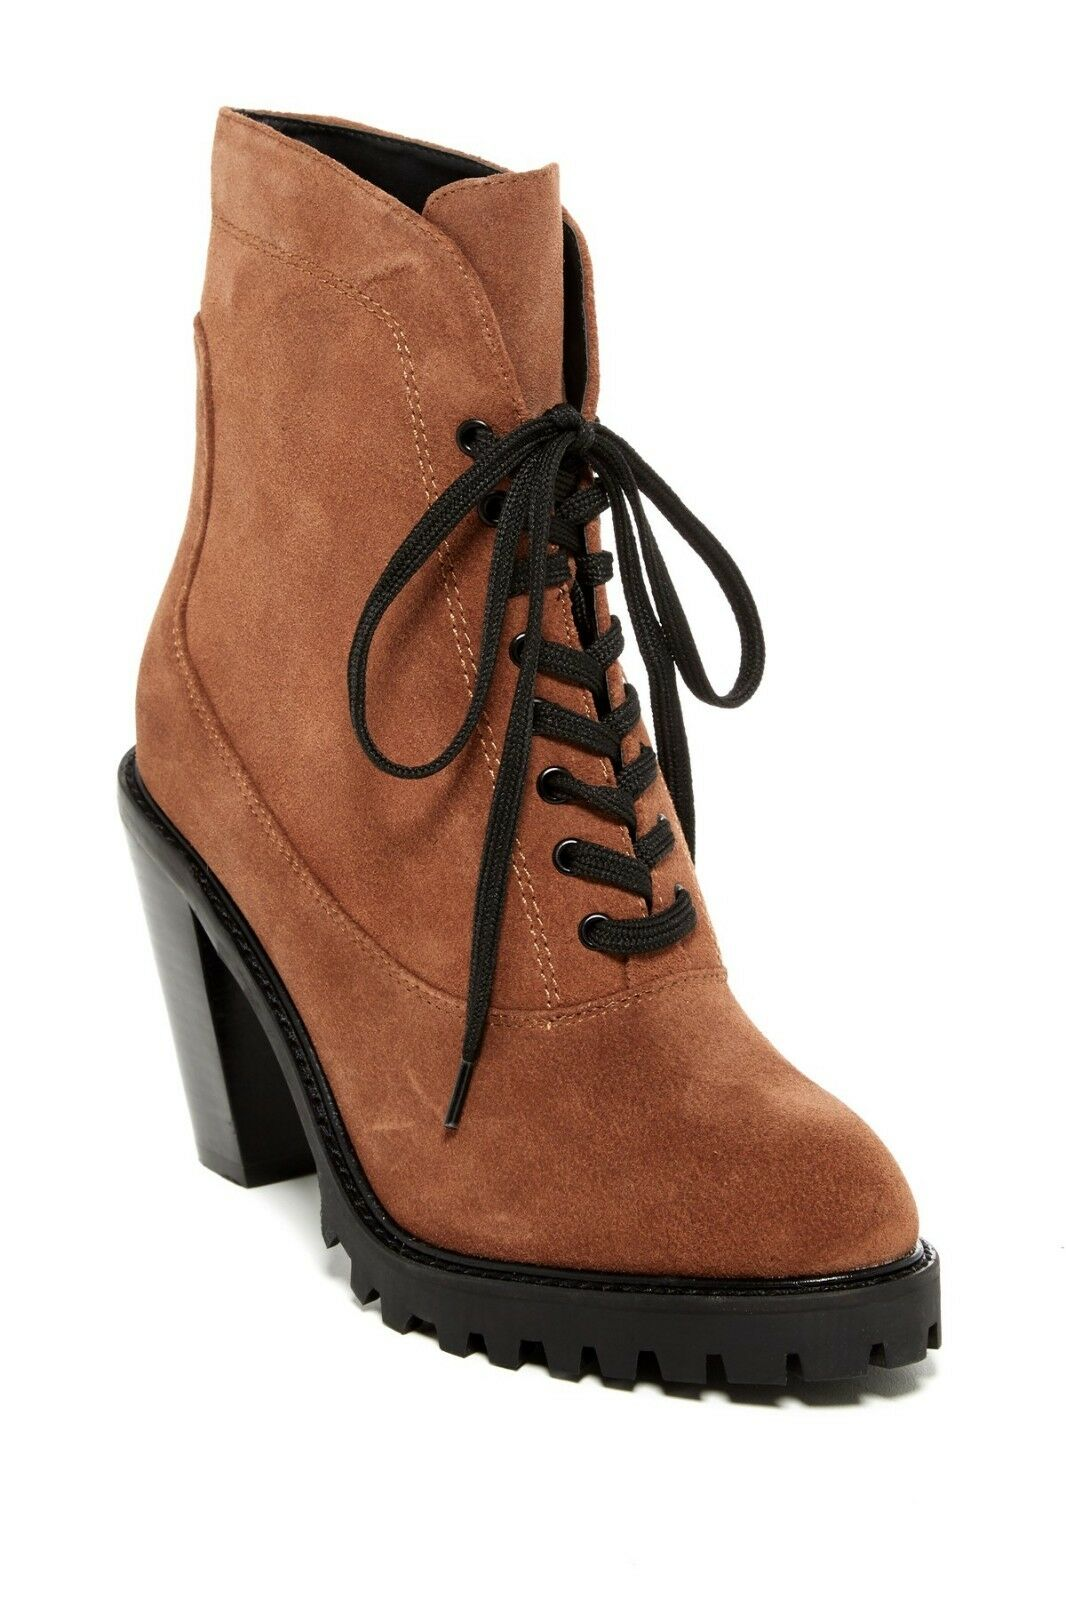 New  Kelsi Dagger Brooklyn Berlin Lace-Up avvioie donna stivali